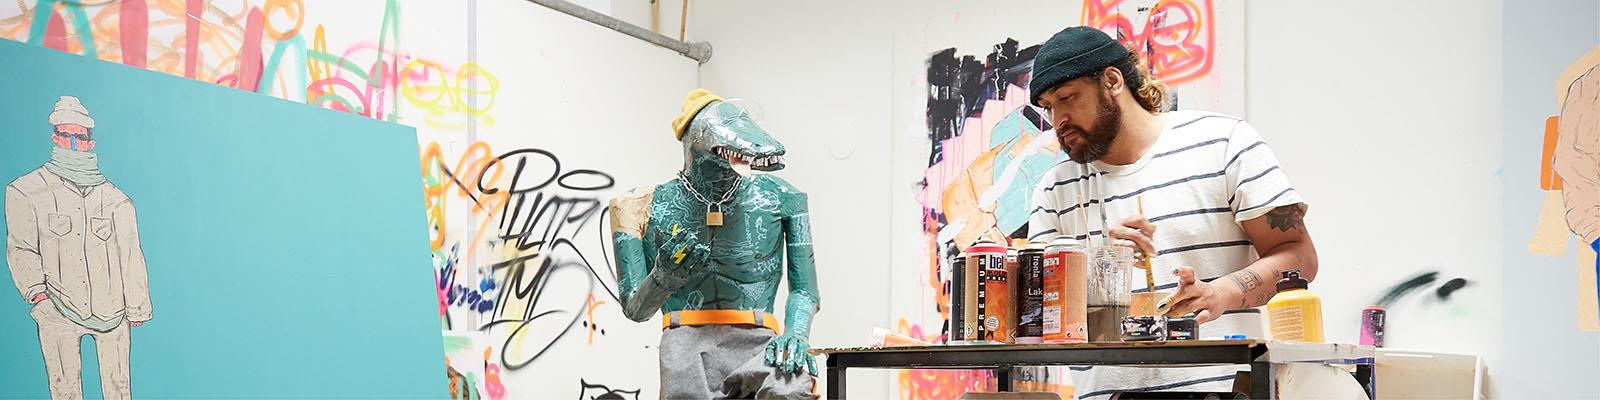 Contemporary art student working in studio